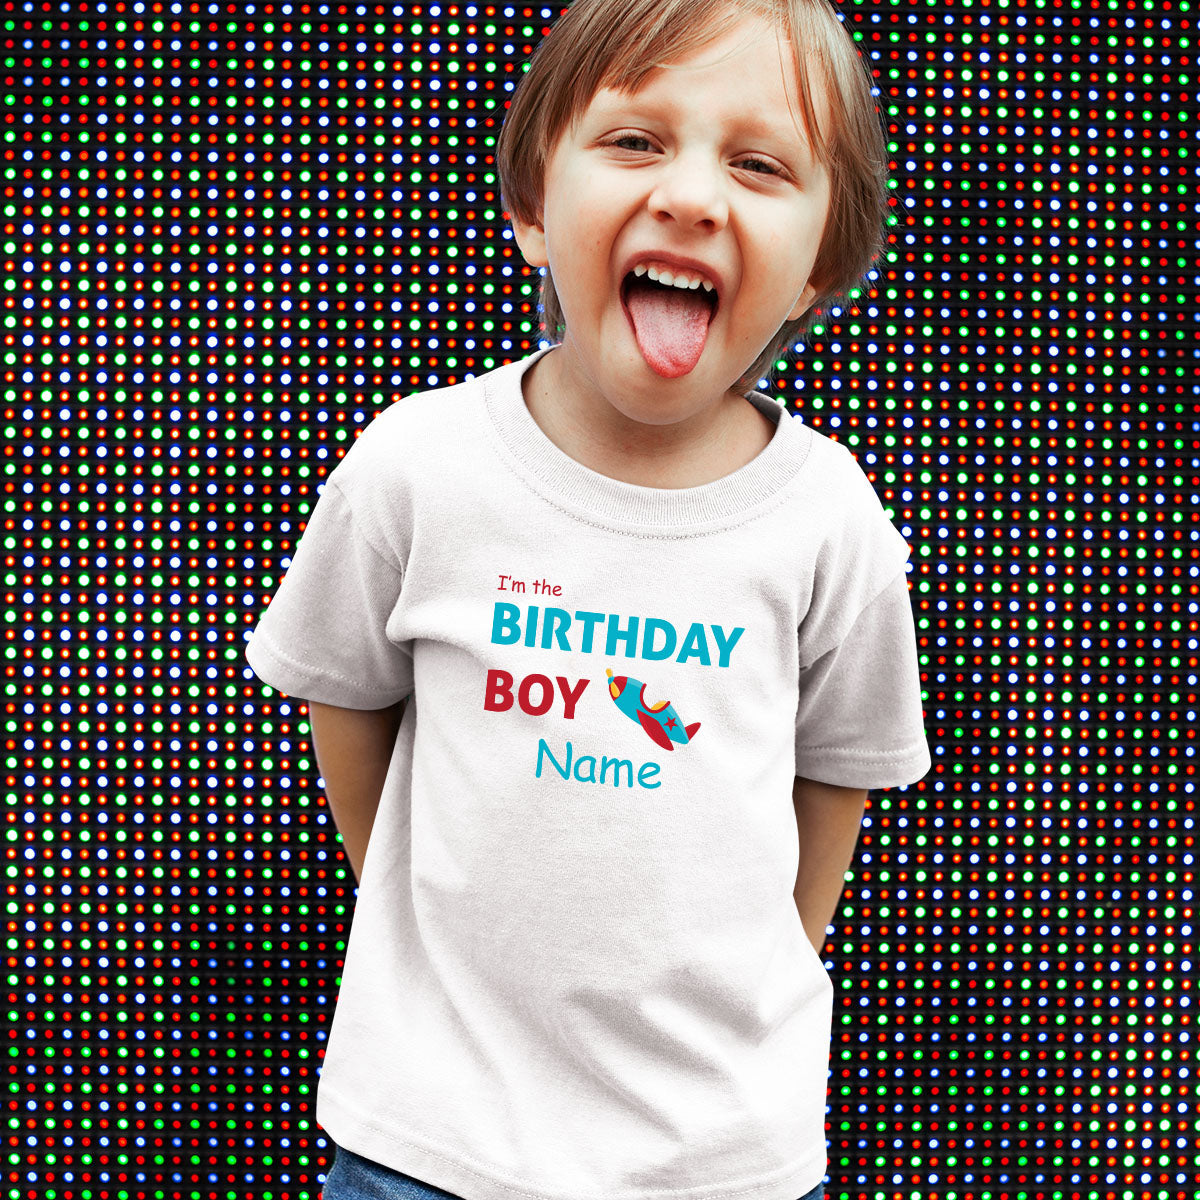 Sprinklecart Cute Air Plane Birthday T Shirt | Personalized Birthday Wear Gift for Your Little One